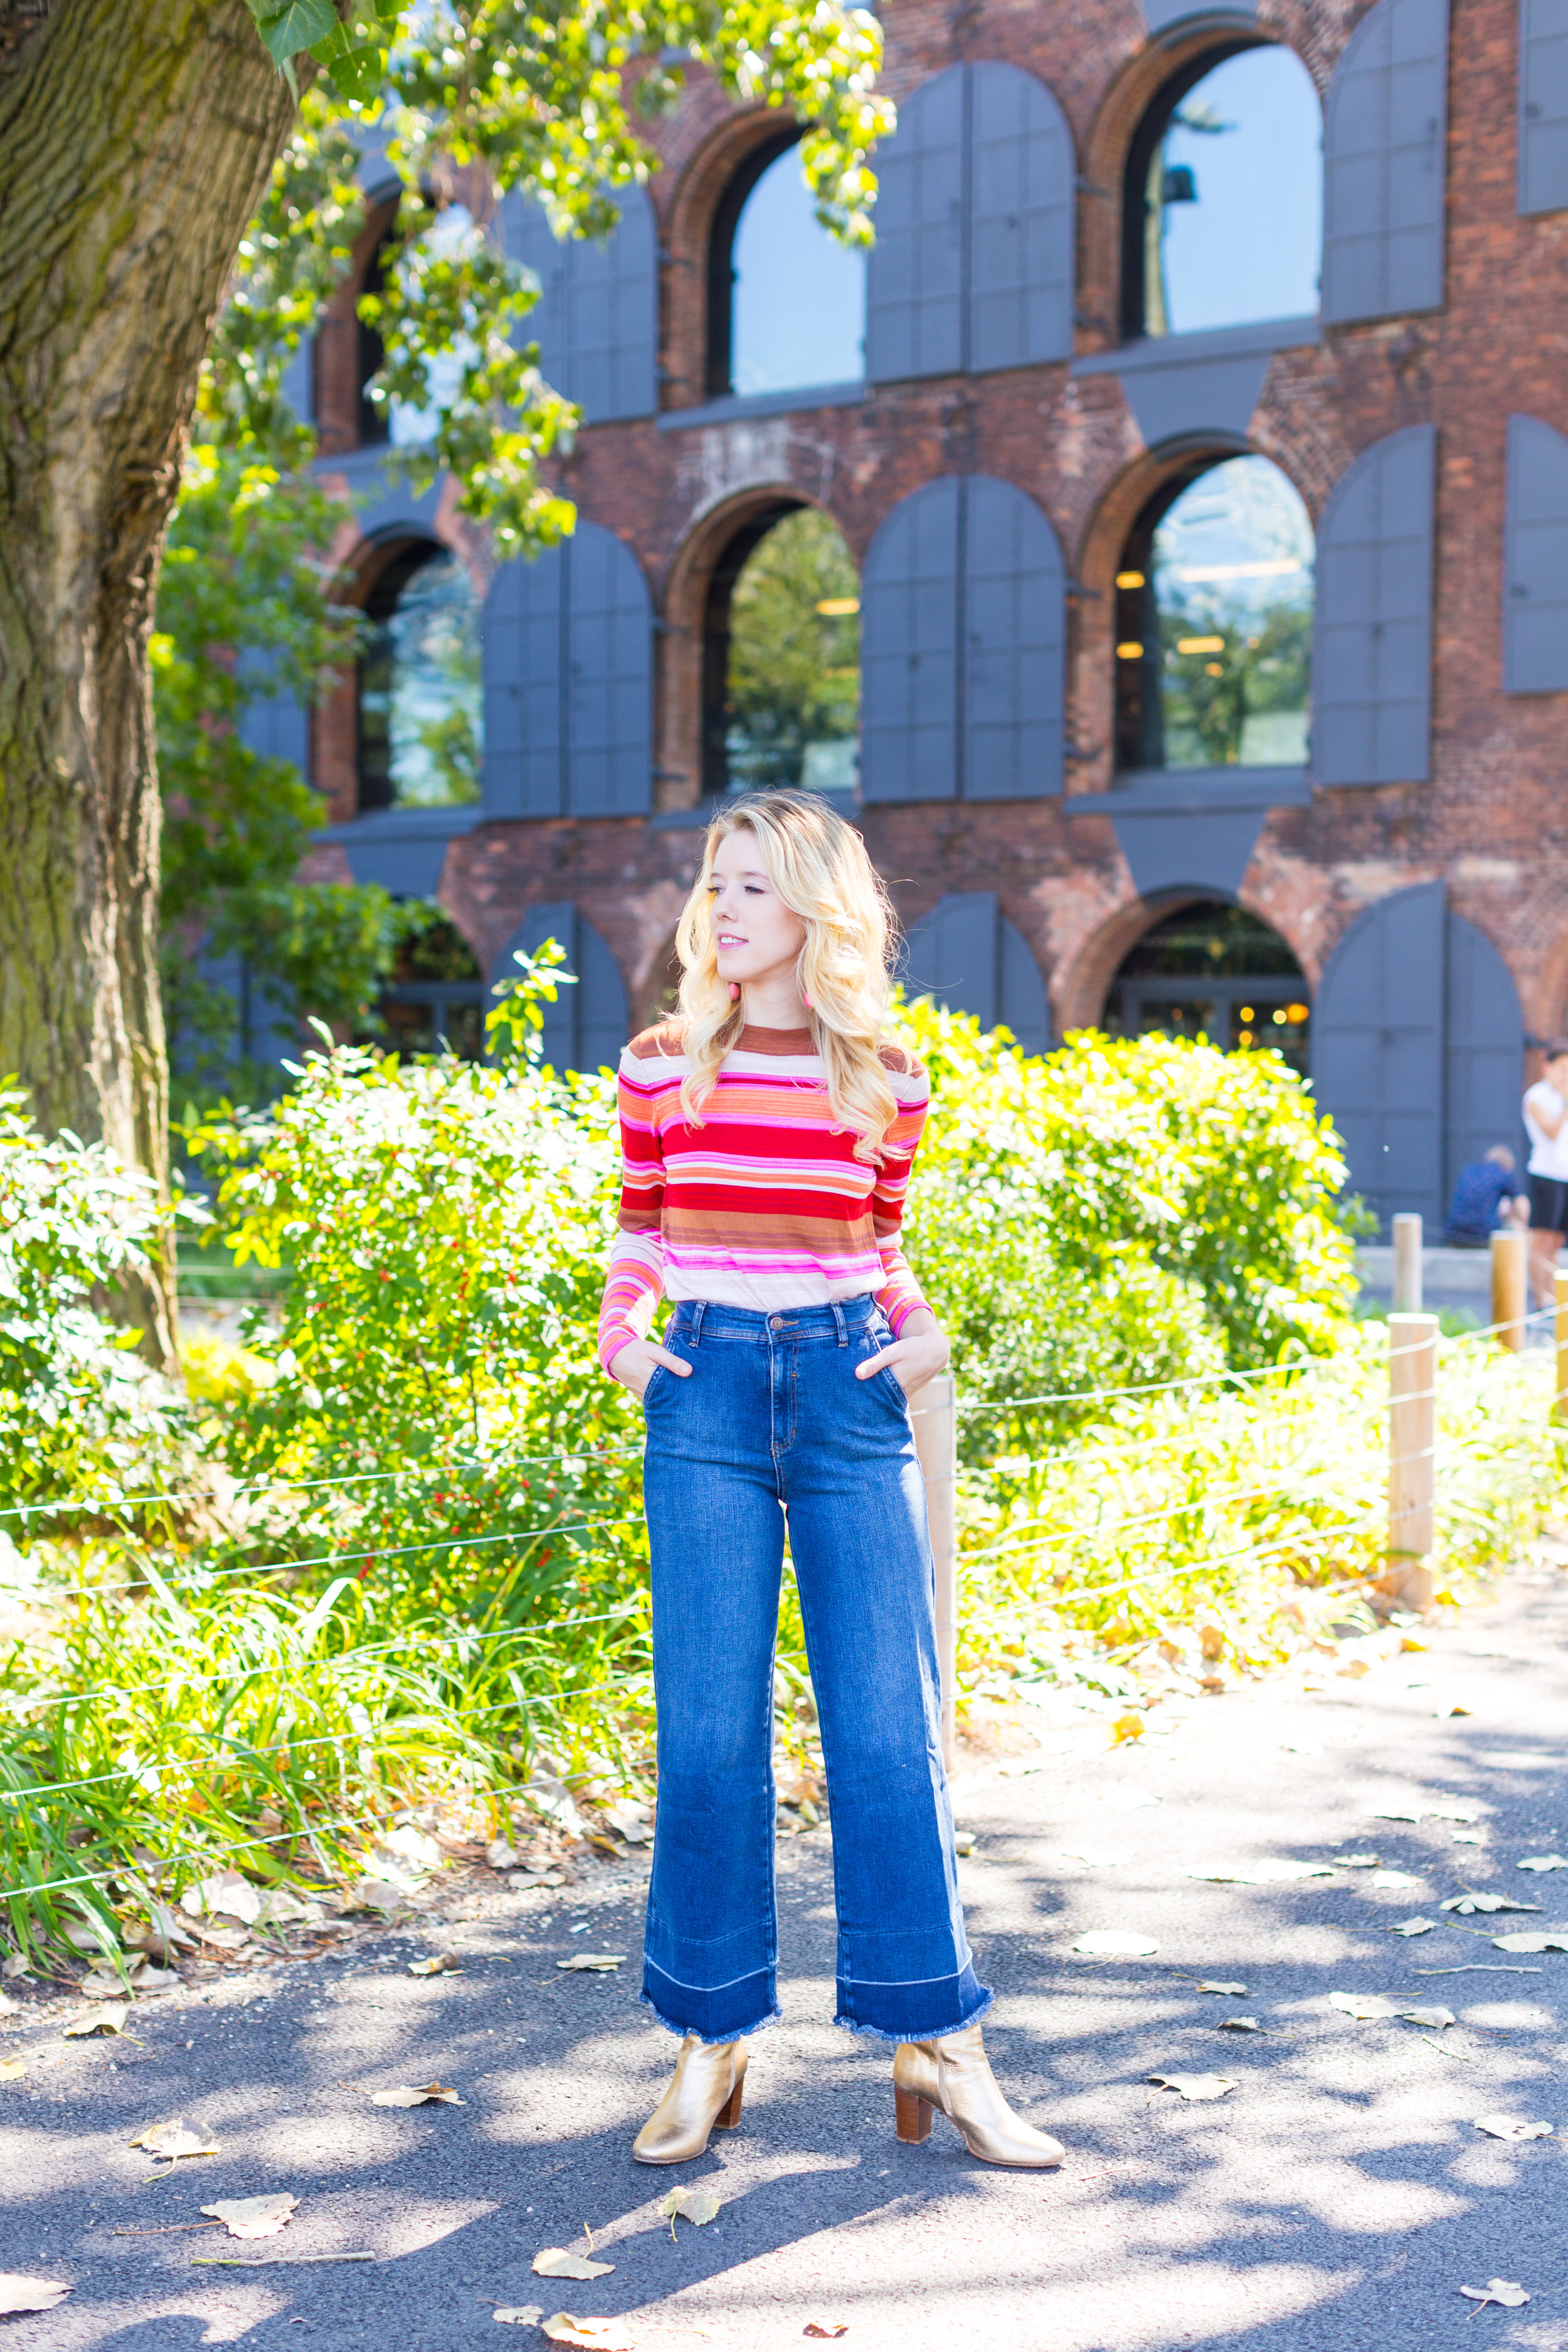 Fall Fashion Retro Striped Sweater and Wide Leg Jeans-7.jpg